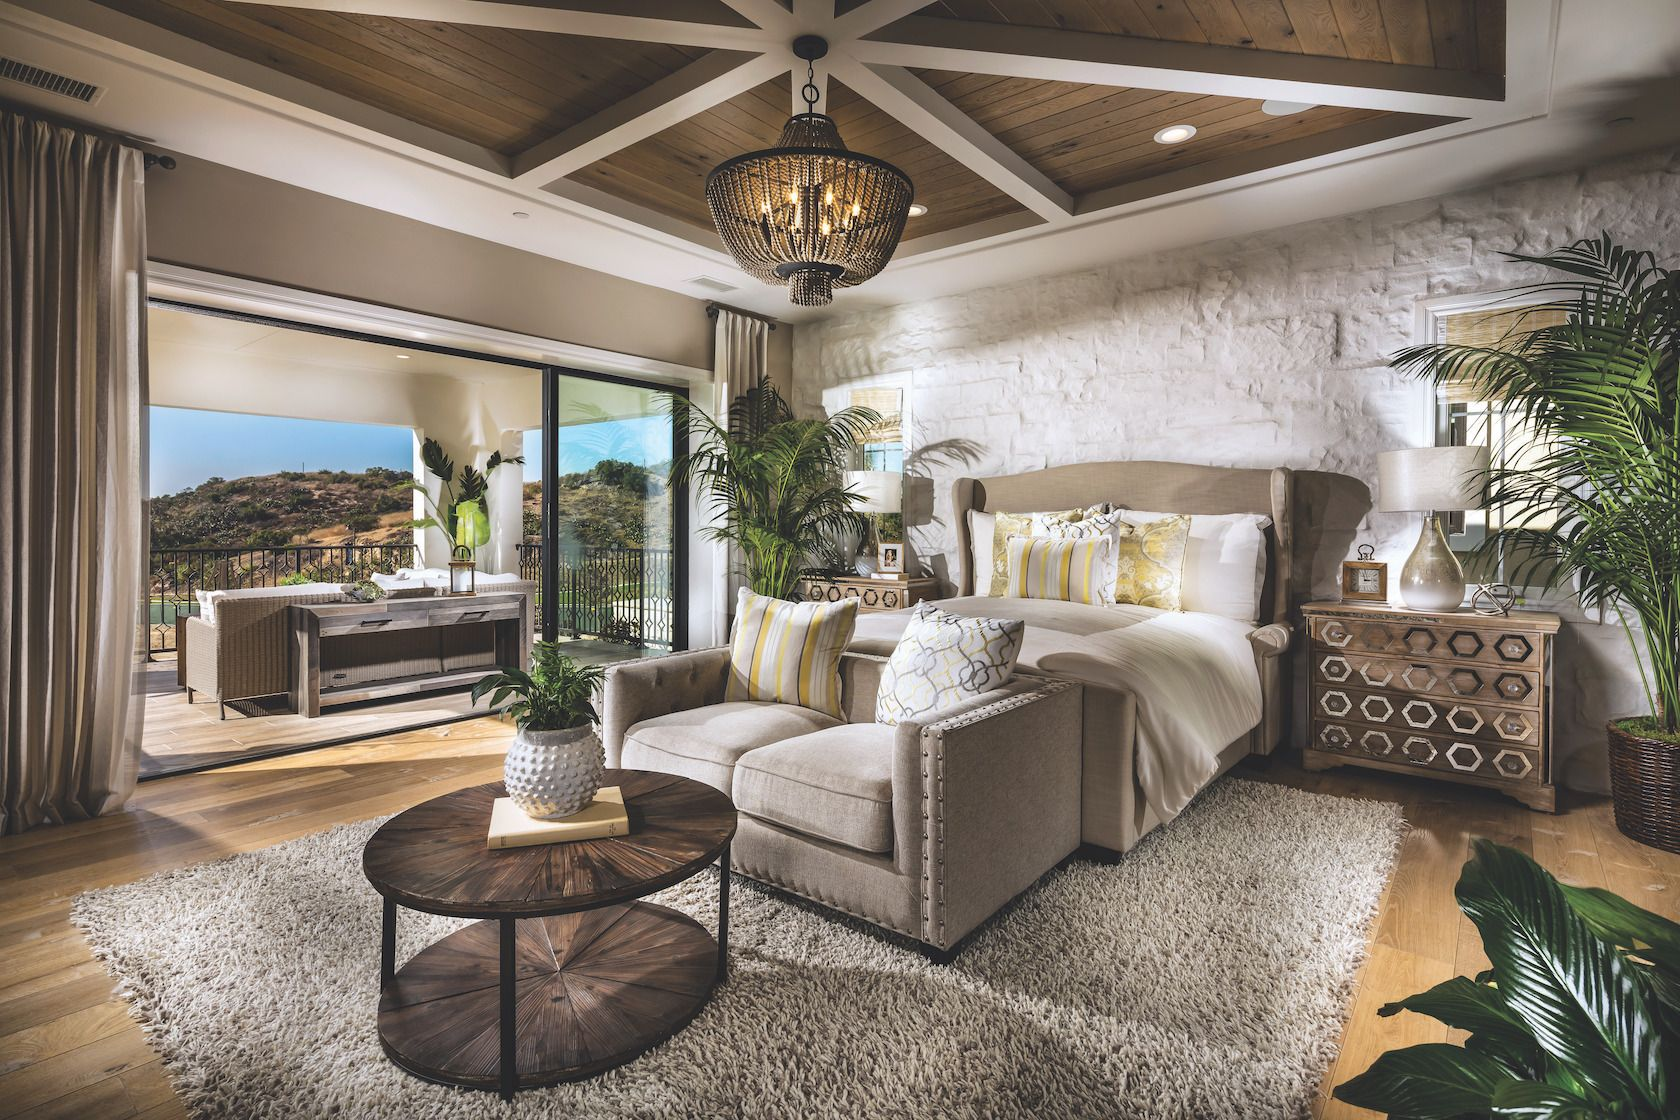 25 accent wall design ideas for your home build on accent wall ideas id=75740